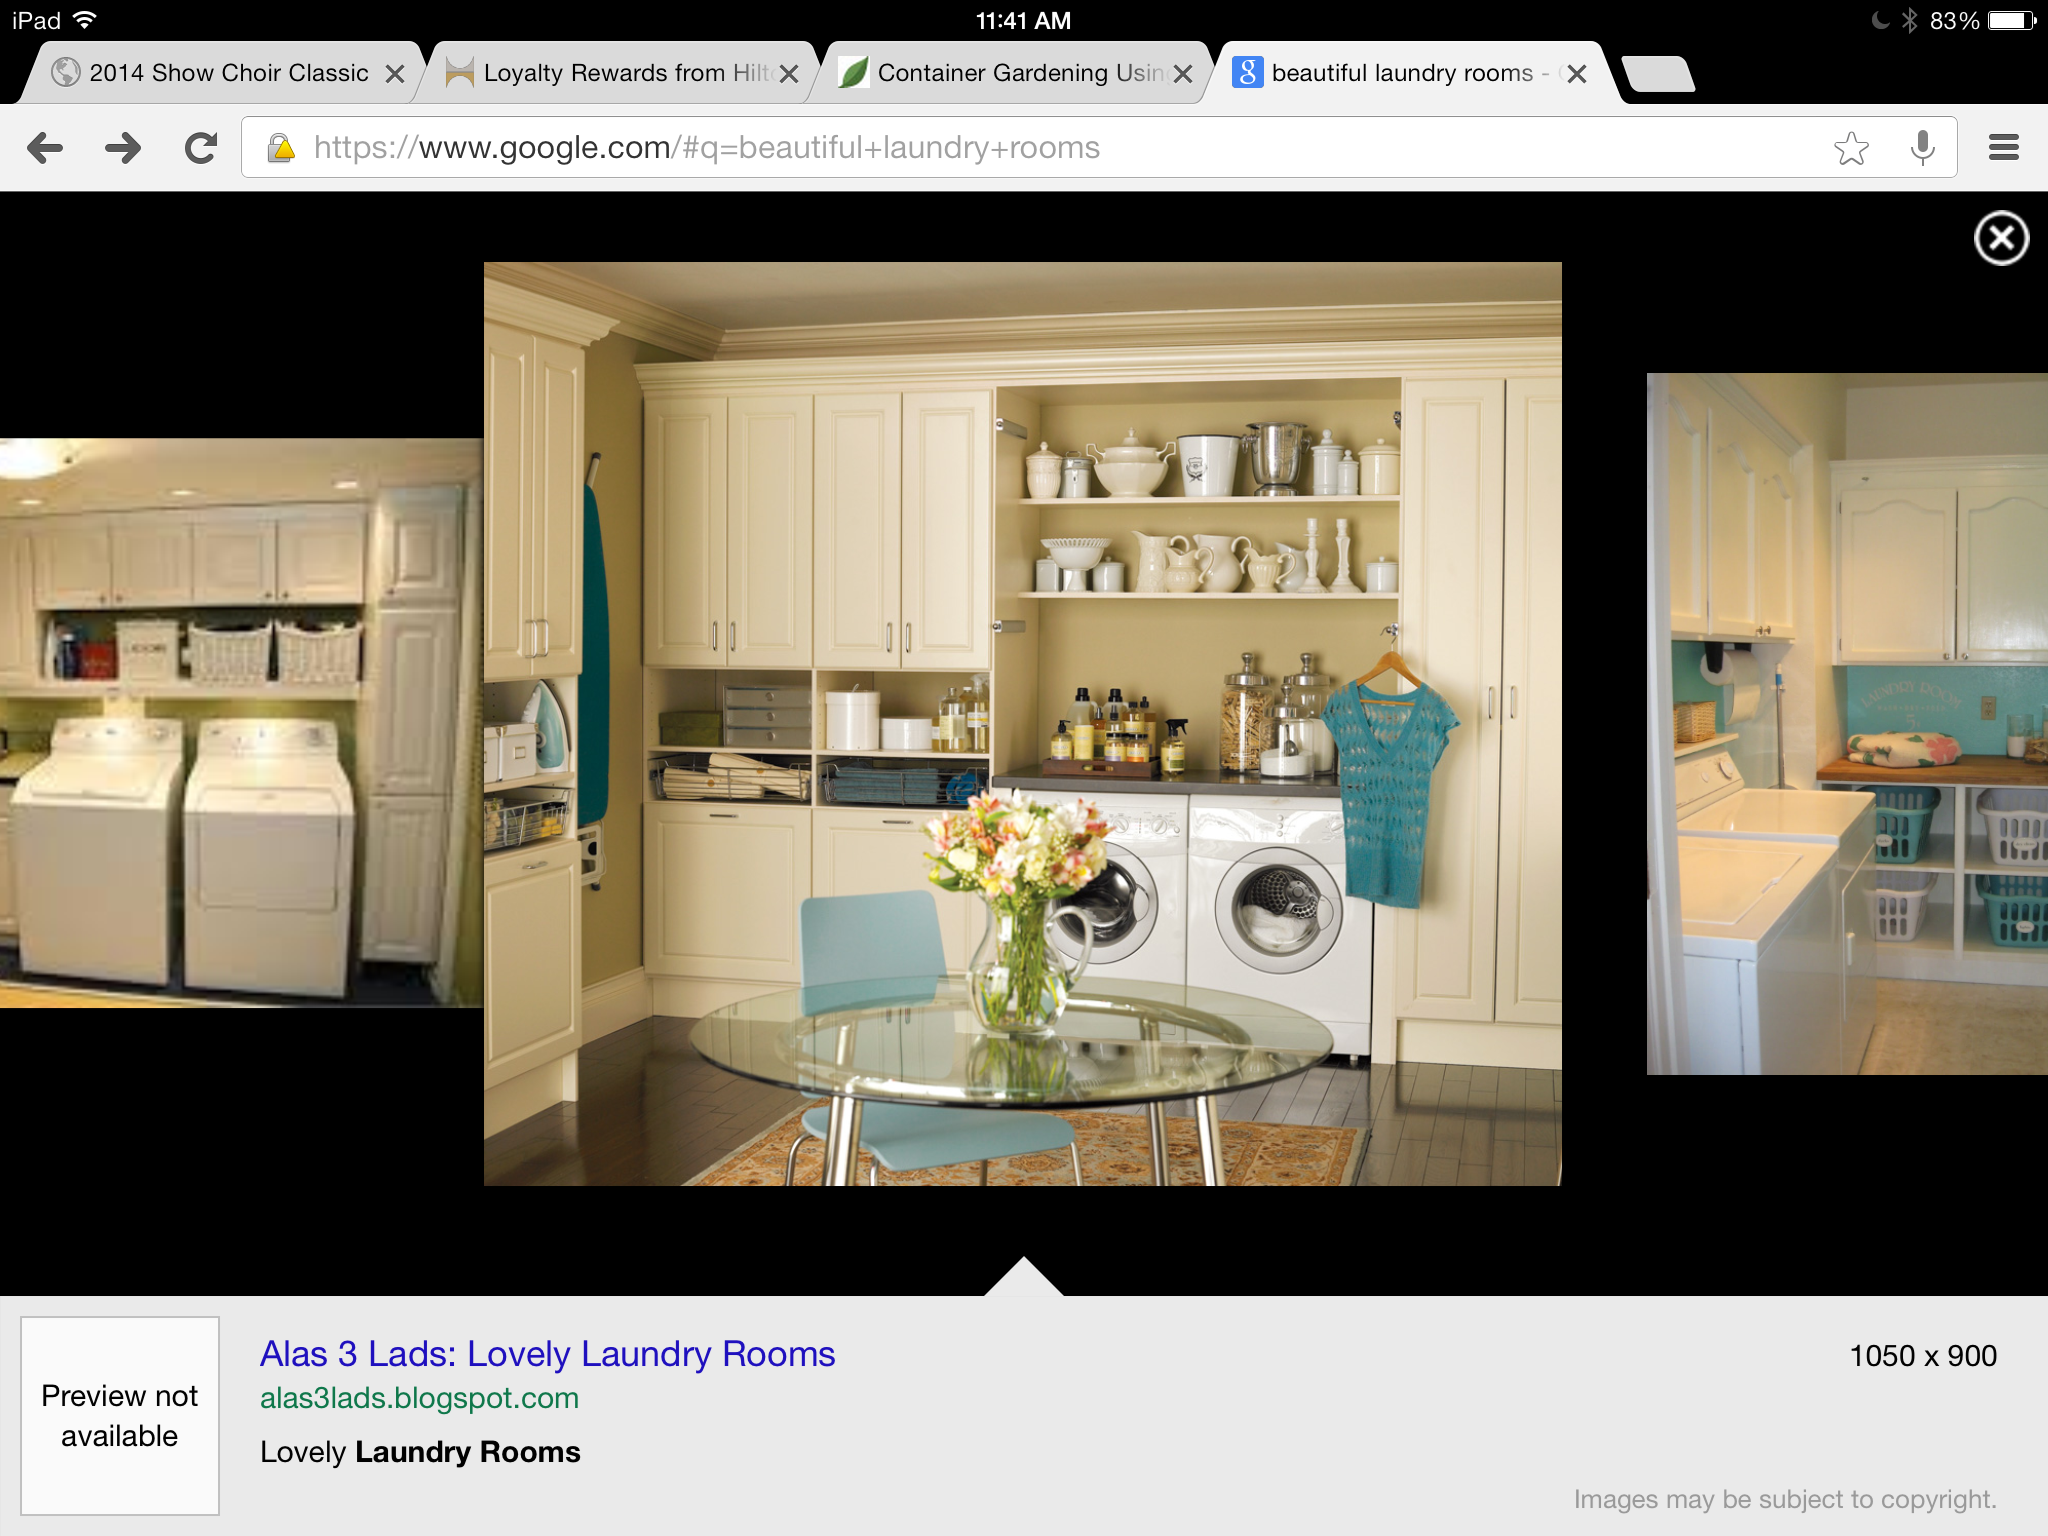 beautiful laundry rooms - Home Design And Decor